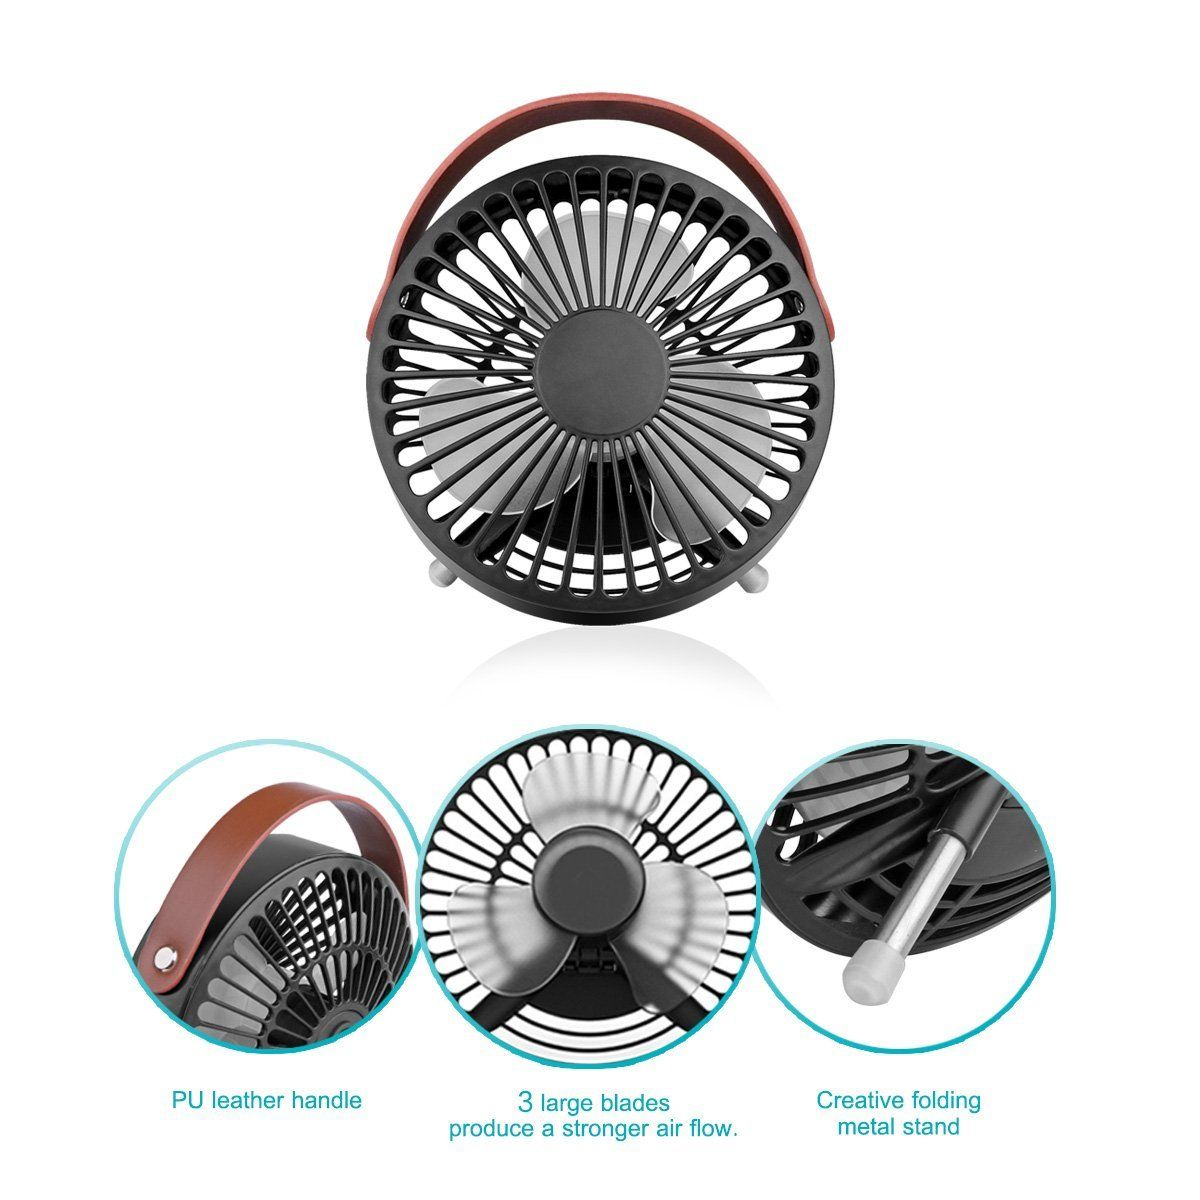 Konesky Small Desk USB Cooling Fan with Leather Handle - Quiet Office Fan with Enhanced Airflow, Lower Noise, Fashion Design